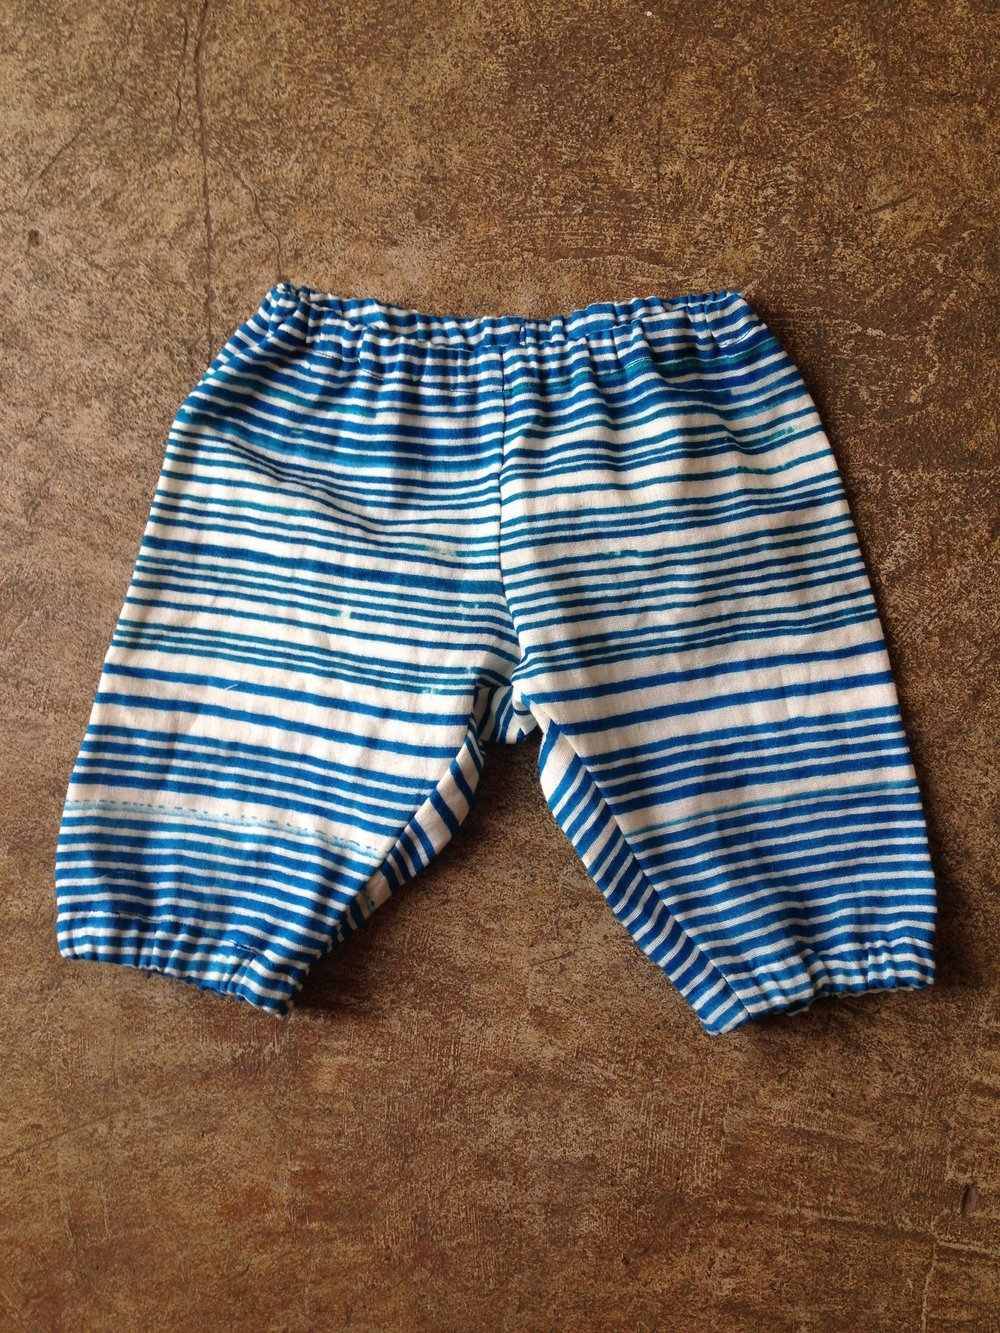 Baby Pants in Nani Iro double gauze